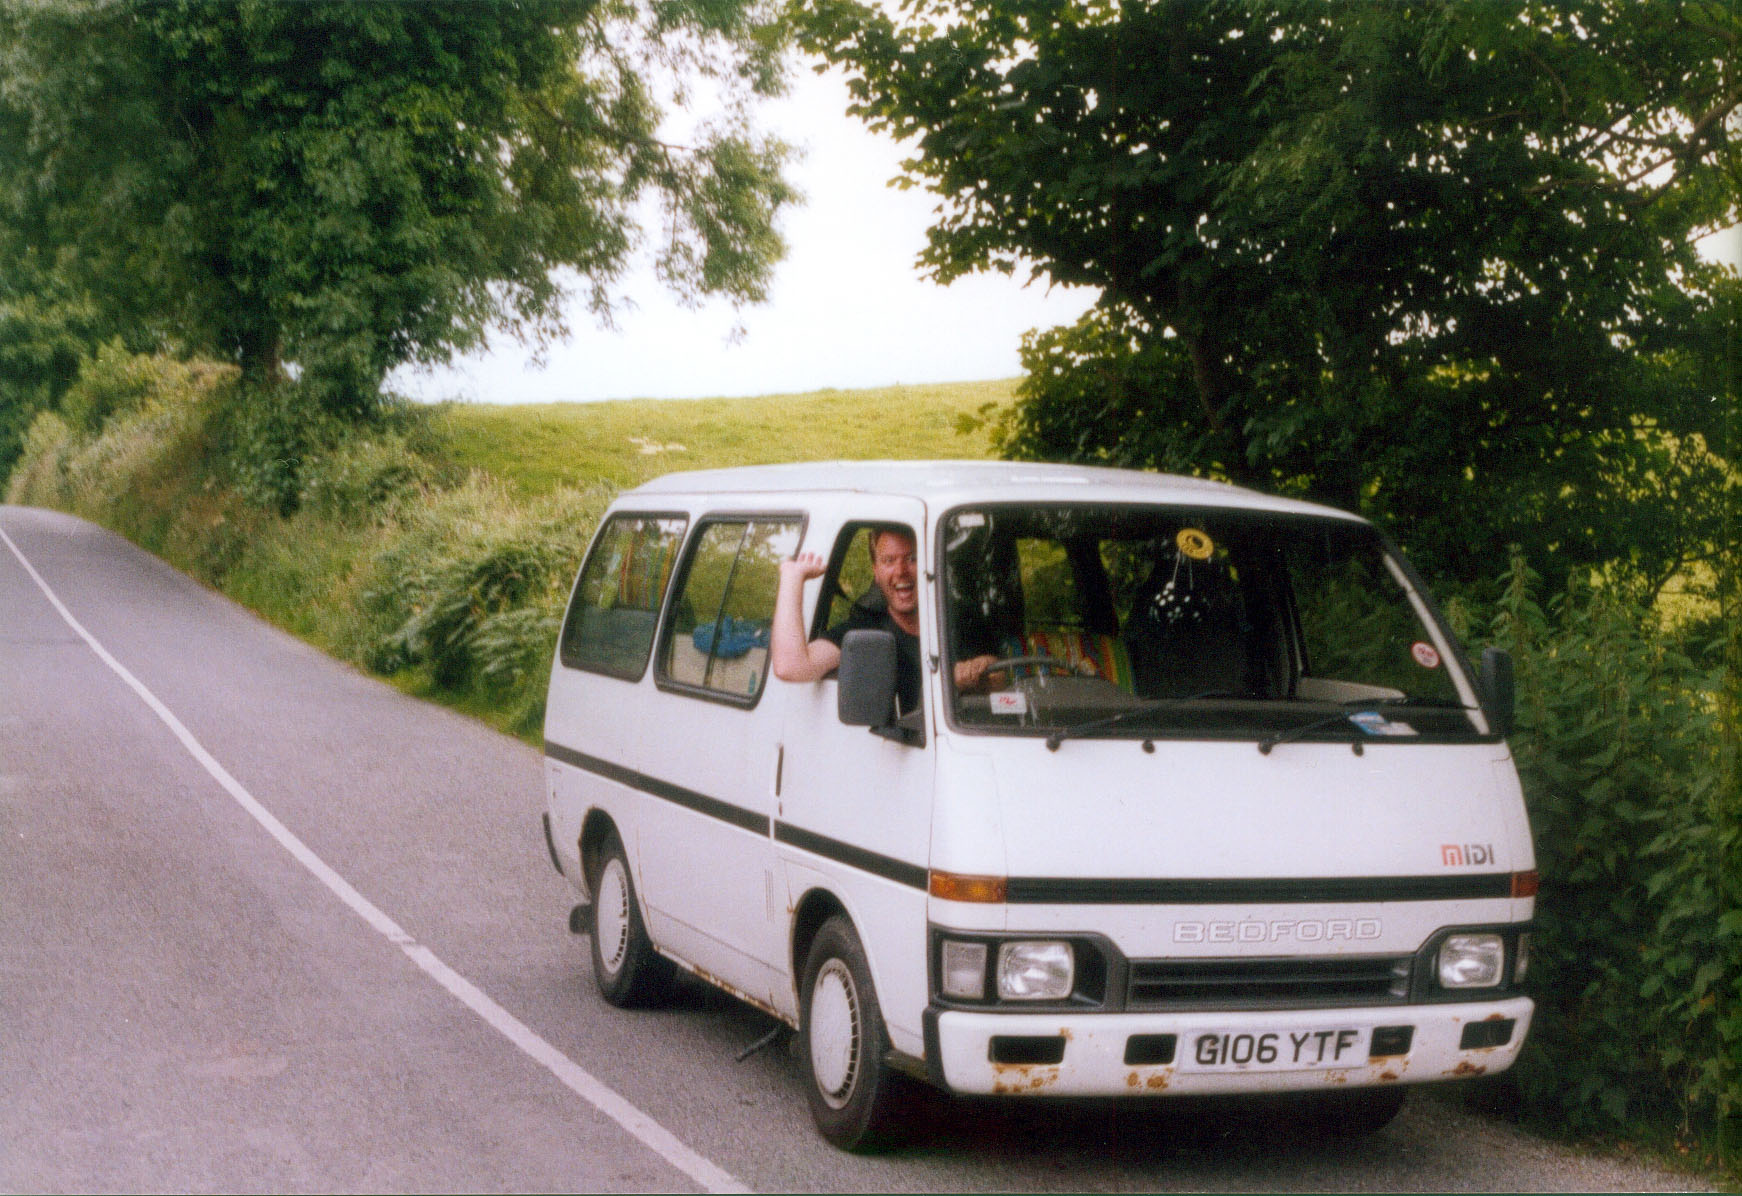 Rolling backwards up Gravity Hill on the Cooley Peninsula in County Louth, Ireland.